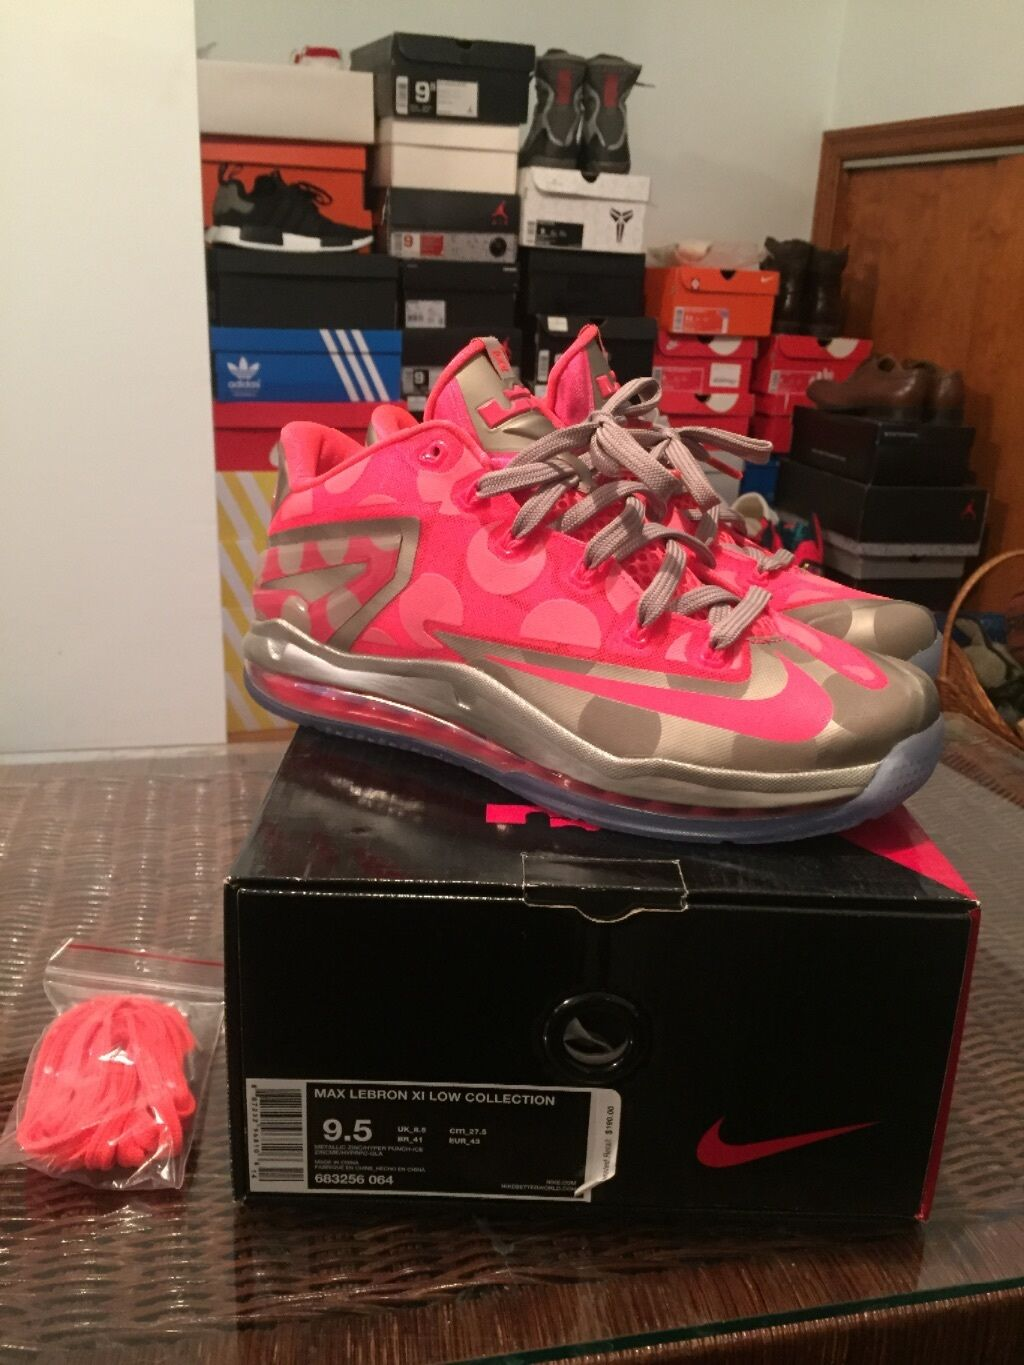 Lebron 11 low grey/pink  Cheap and fashionable